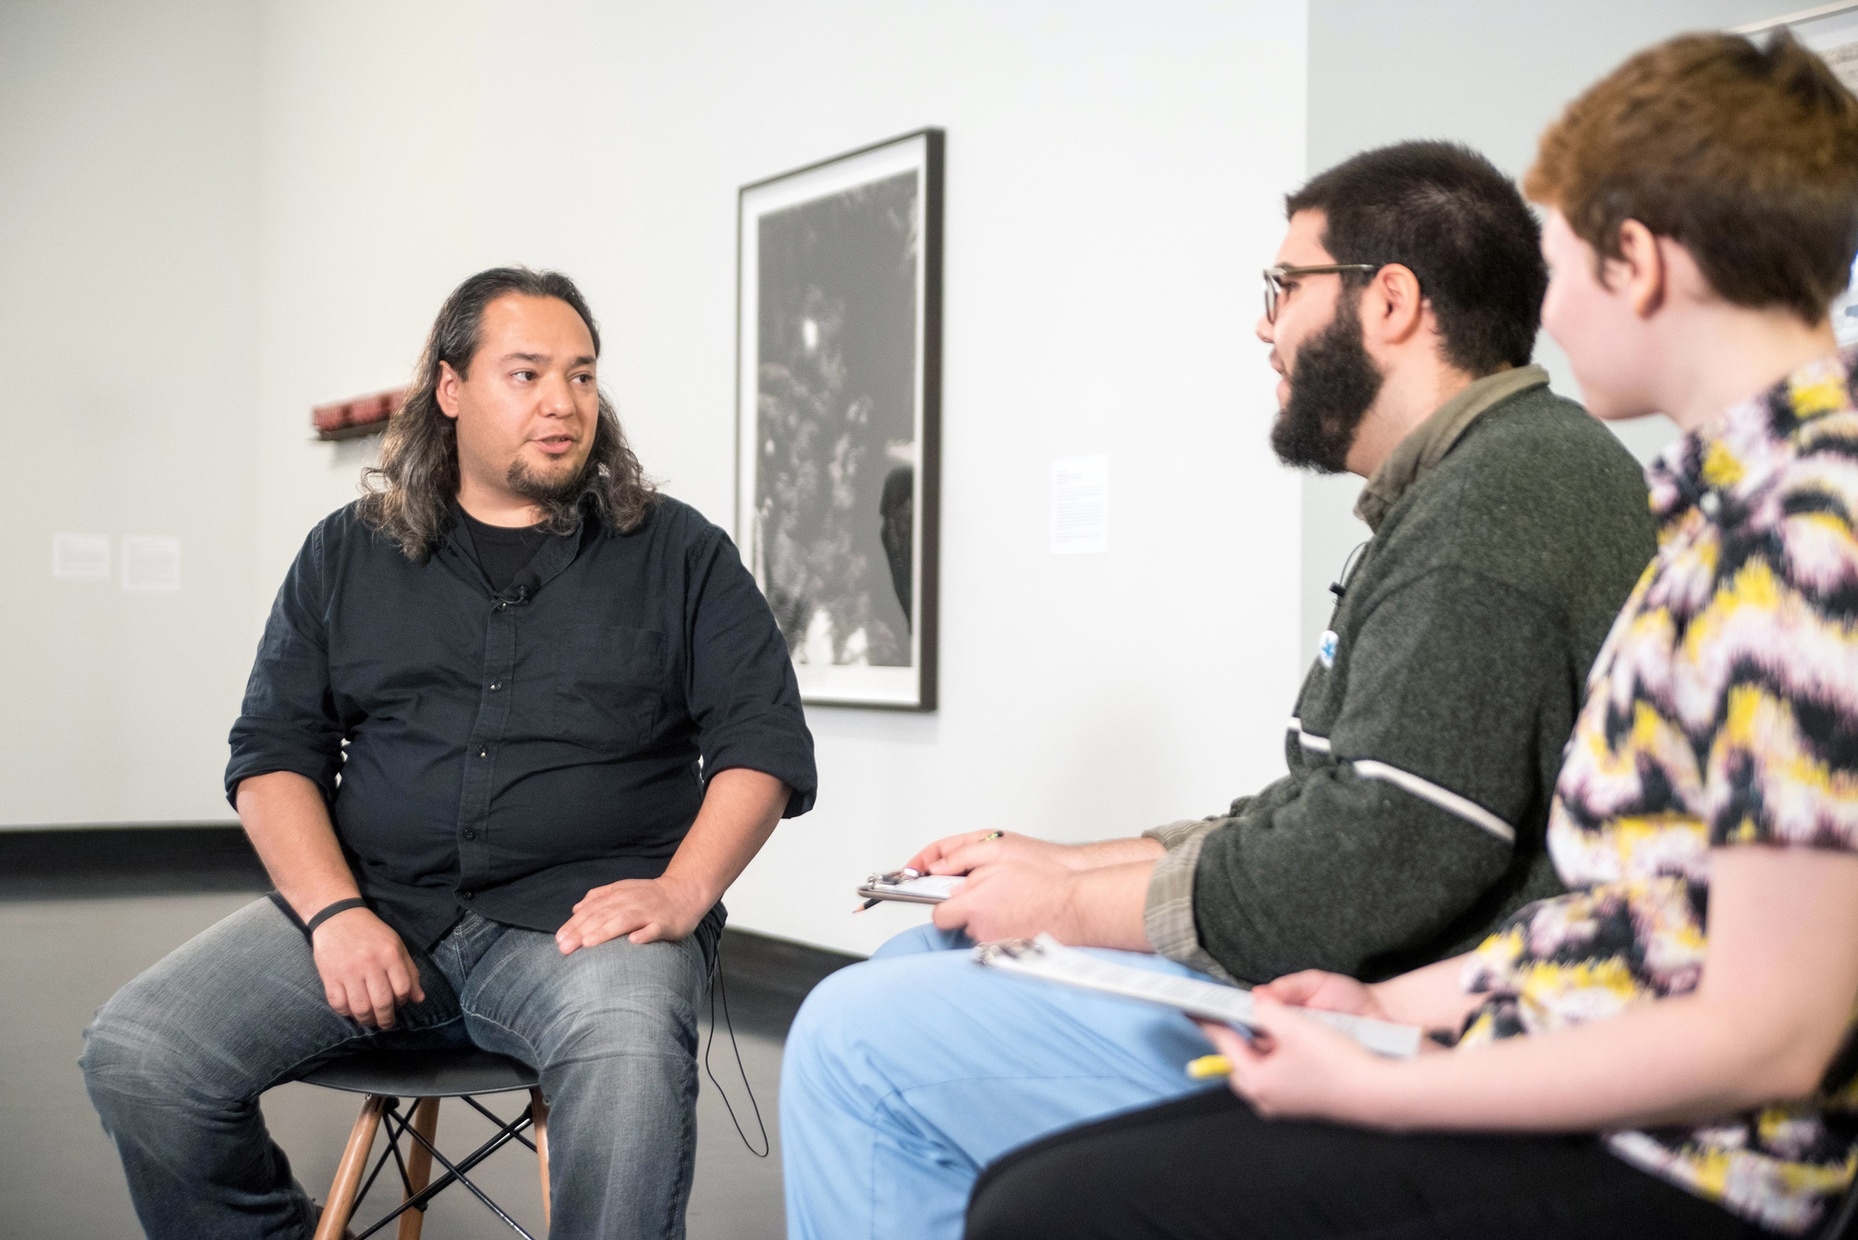 Artist Miguel Aragón, a tanned, Latino man, sits across from two Skidmore students during an interview in a gallery space.